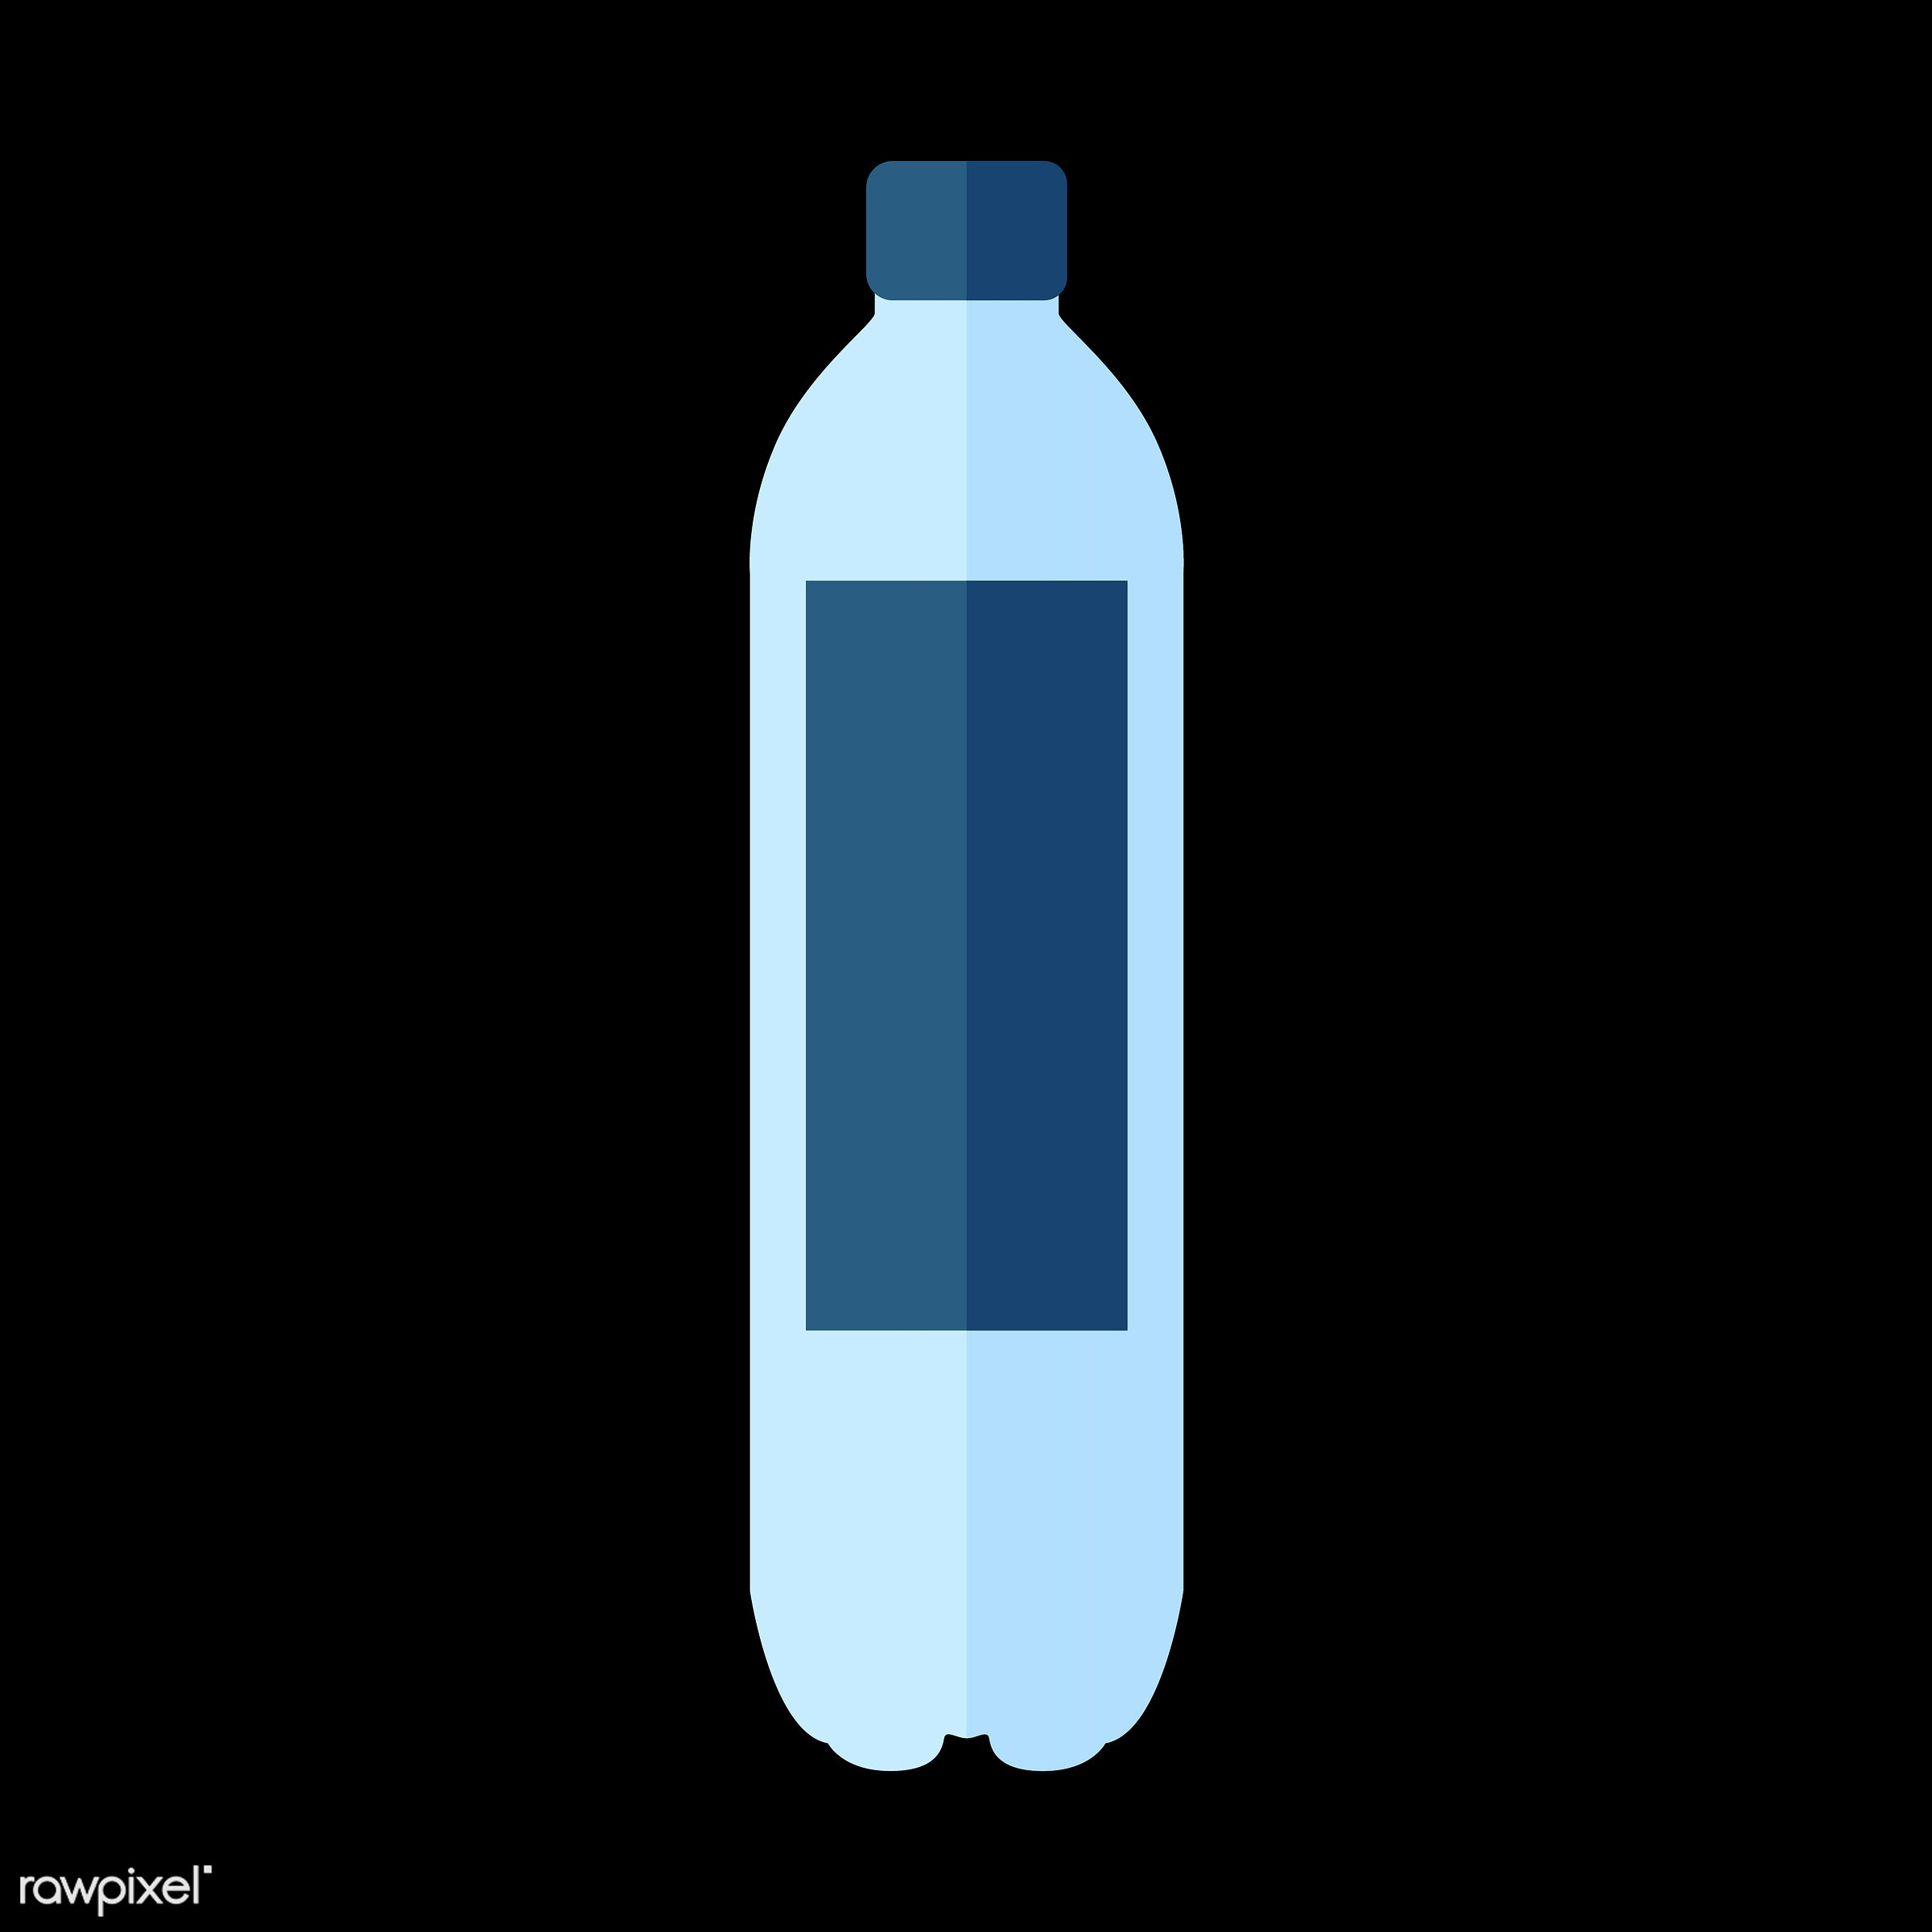 vector, graphic, illustration, icon, symbol, colorful, cute, drink, beverage, water, blue, plastic bottle, soda, sports drink